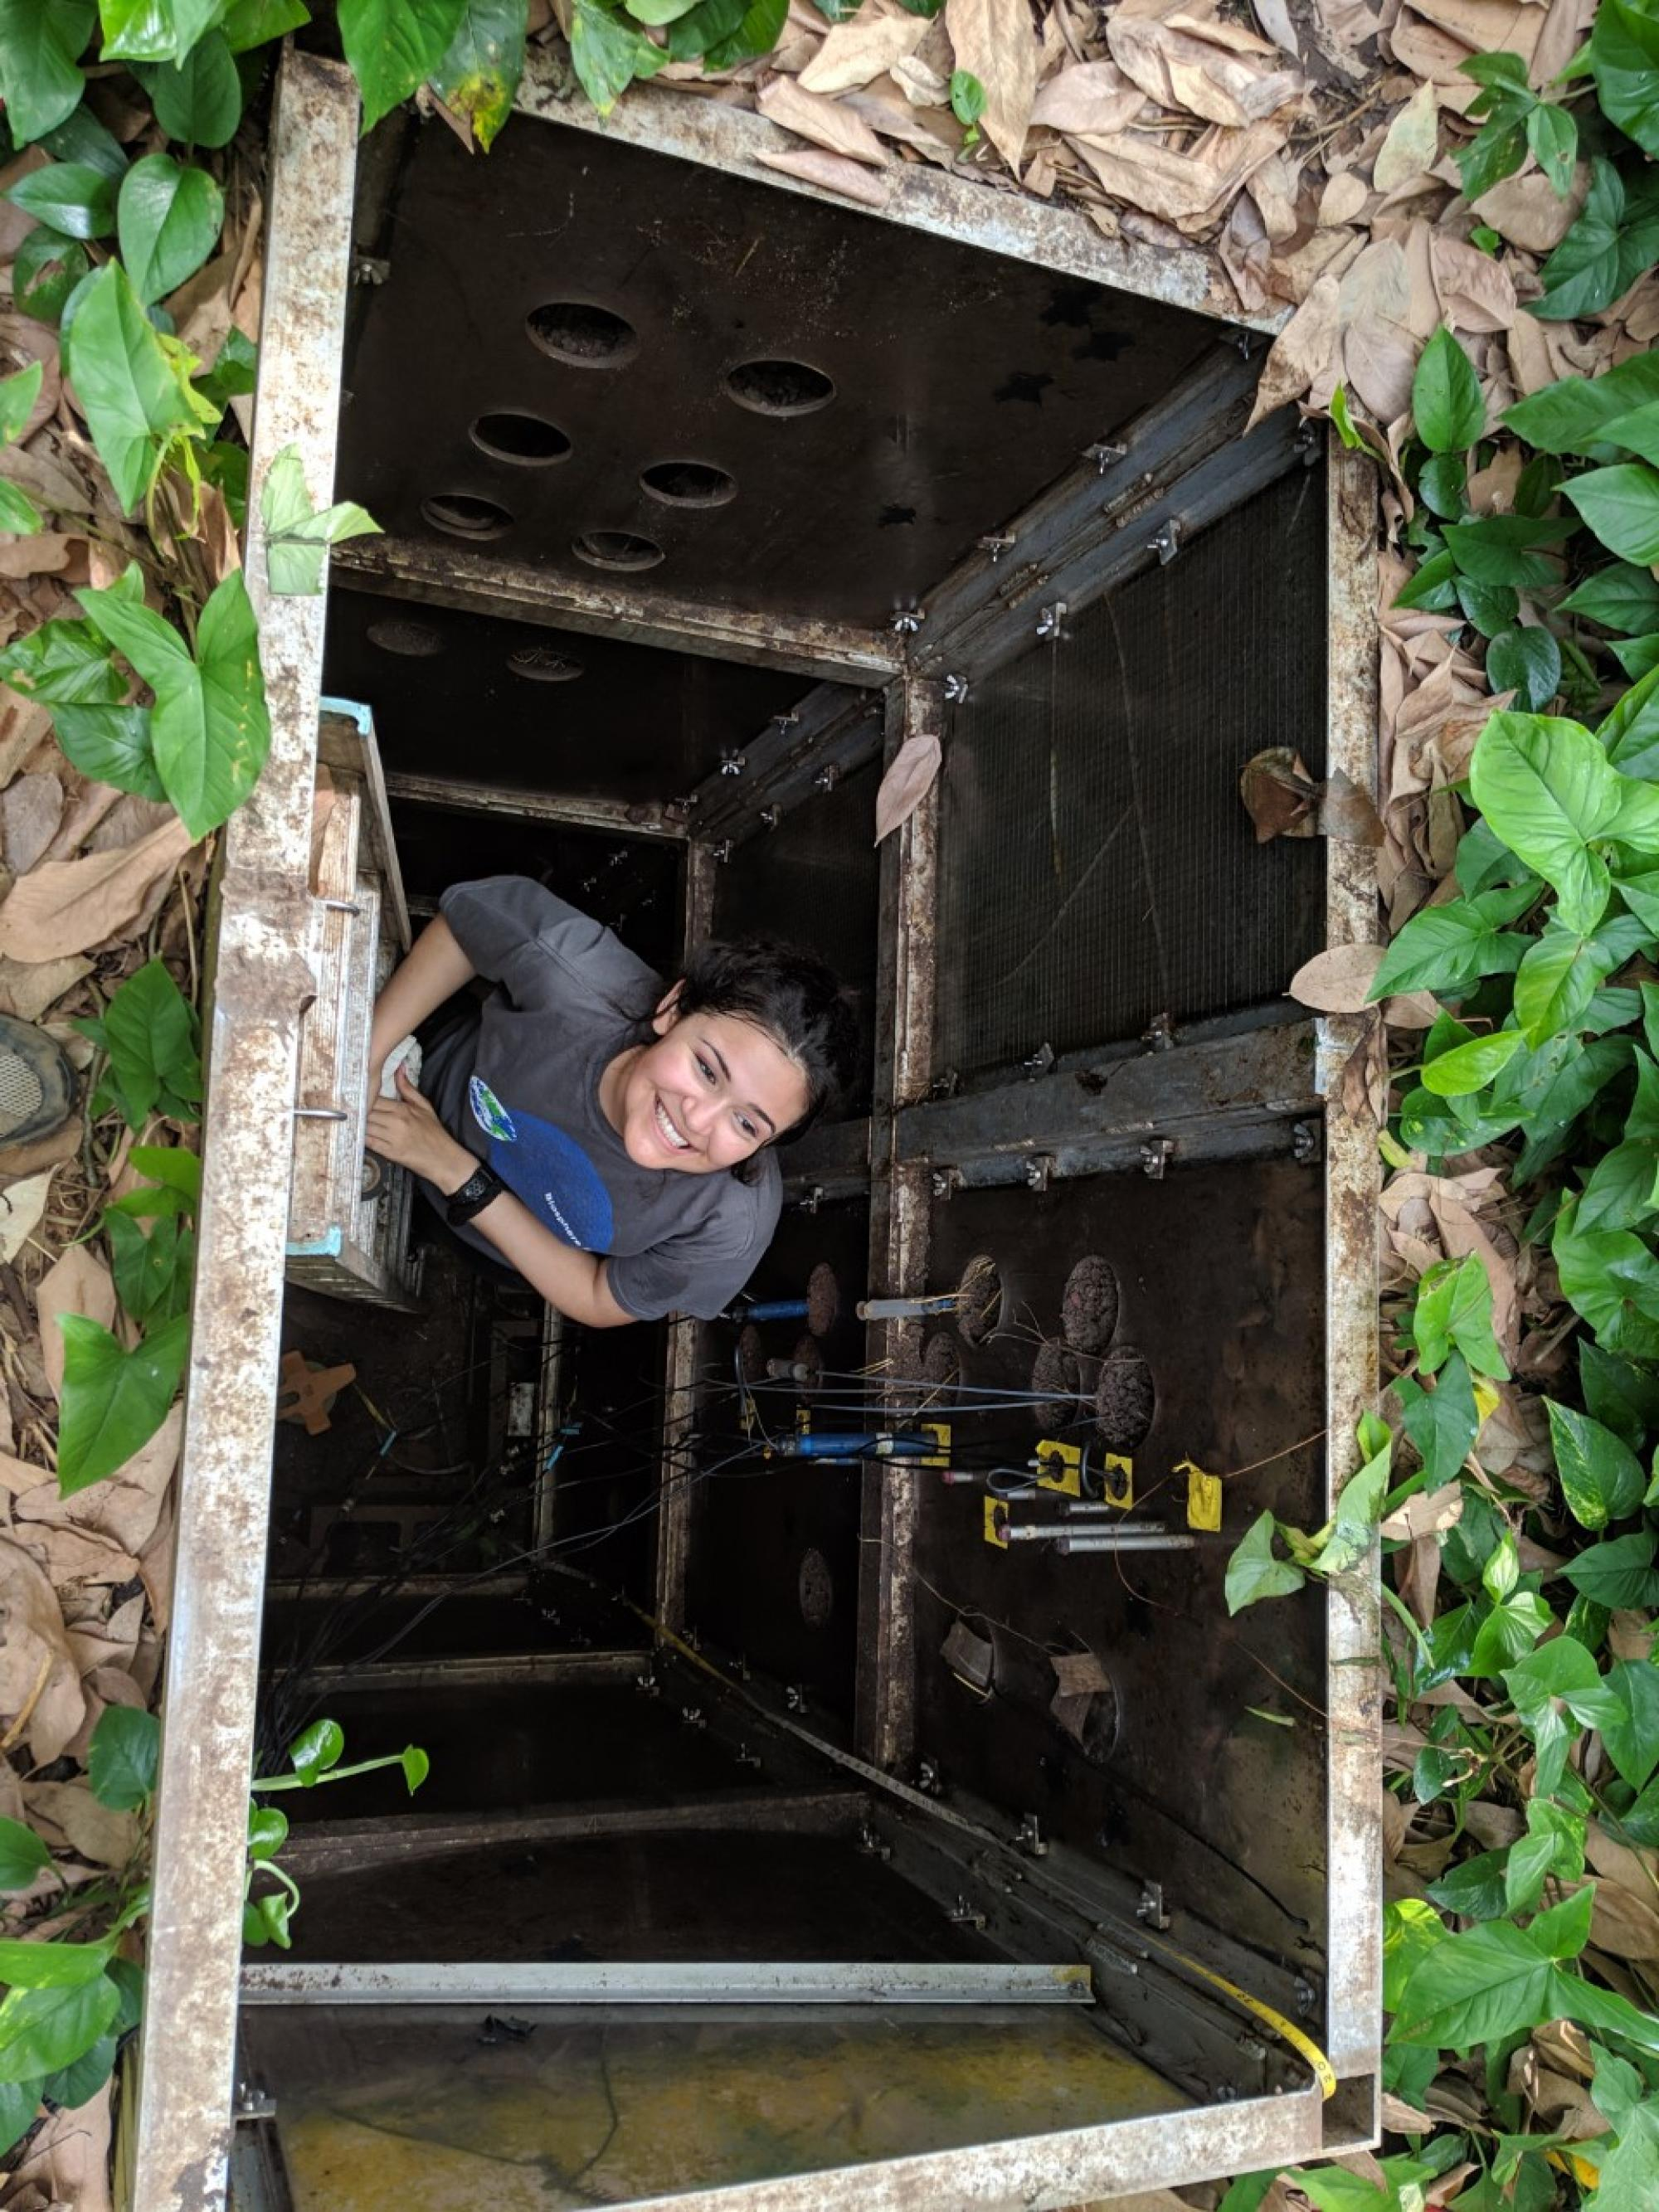 UA undergraduate researche Jessica Graham samples soil from portals at various depths in a 4-meter-deep soil pit.